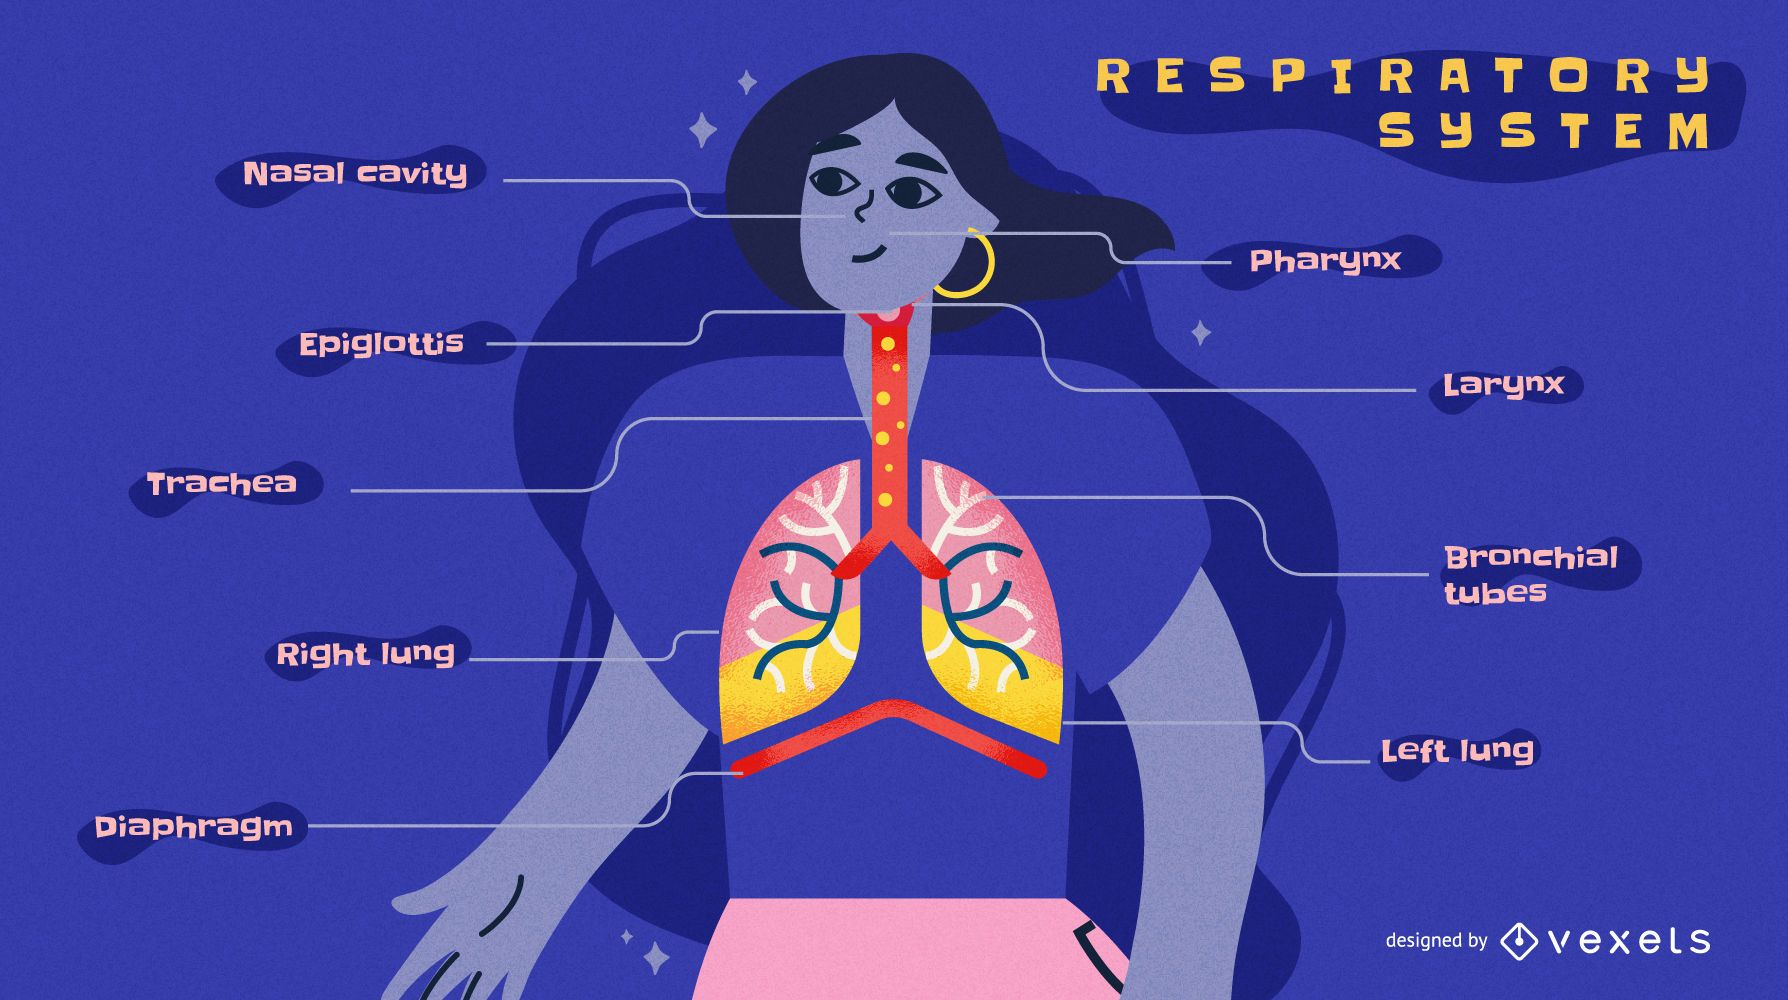 Respiratory system infographic template